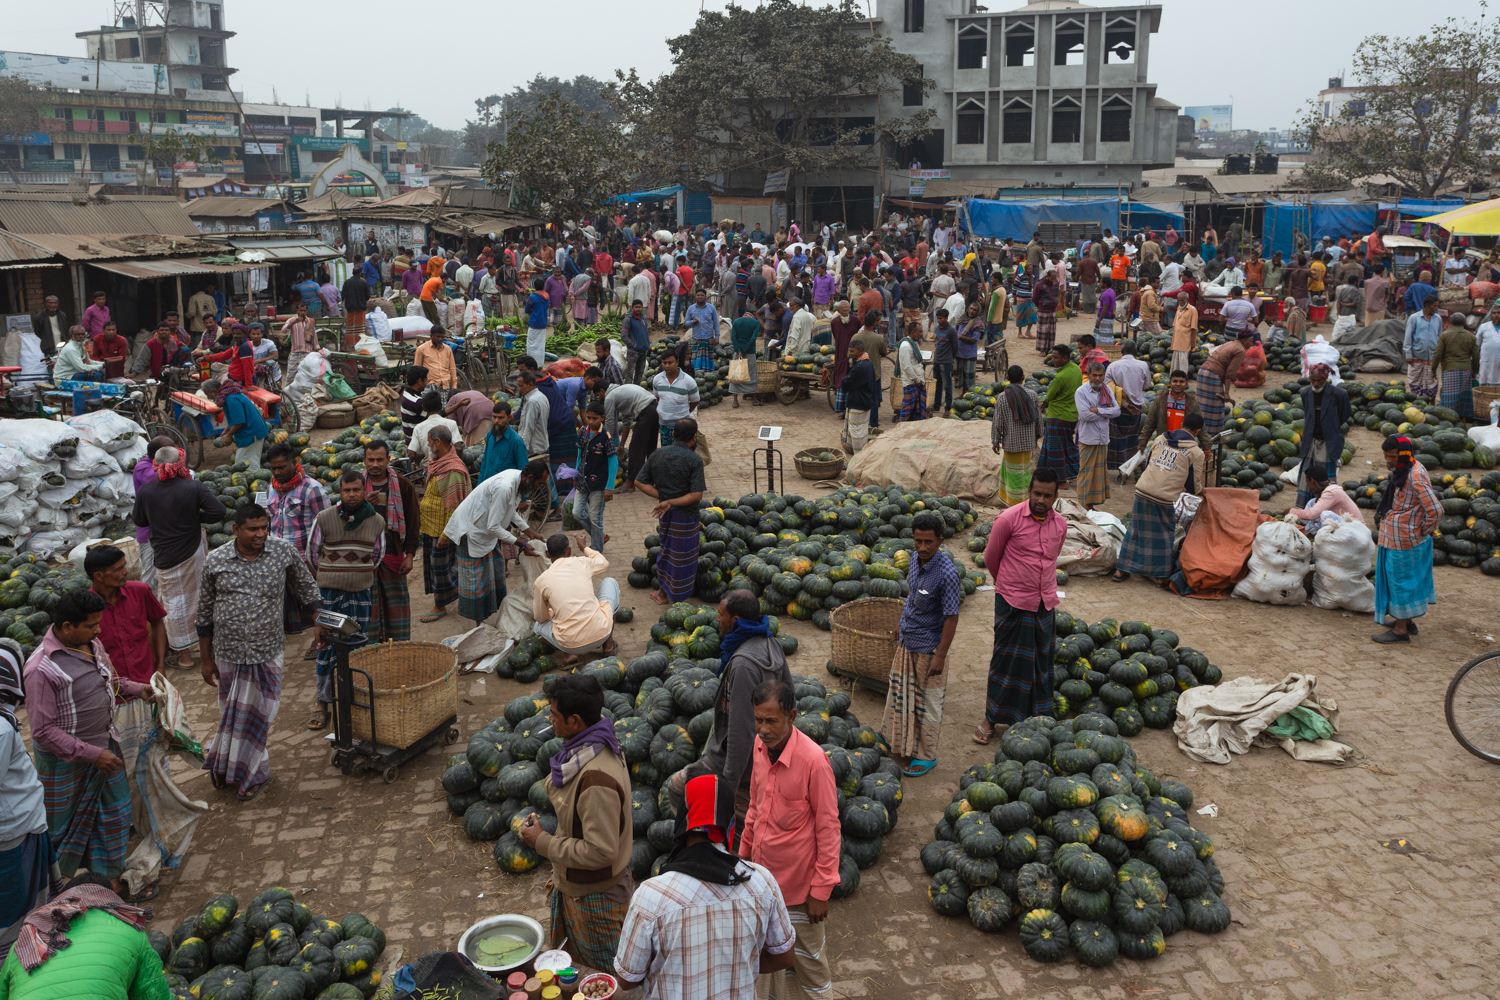 Busy, bustling vegetable markets in Dhaka, Bangladesh.